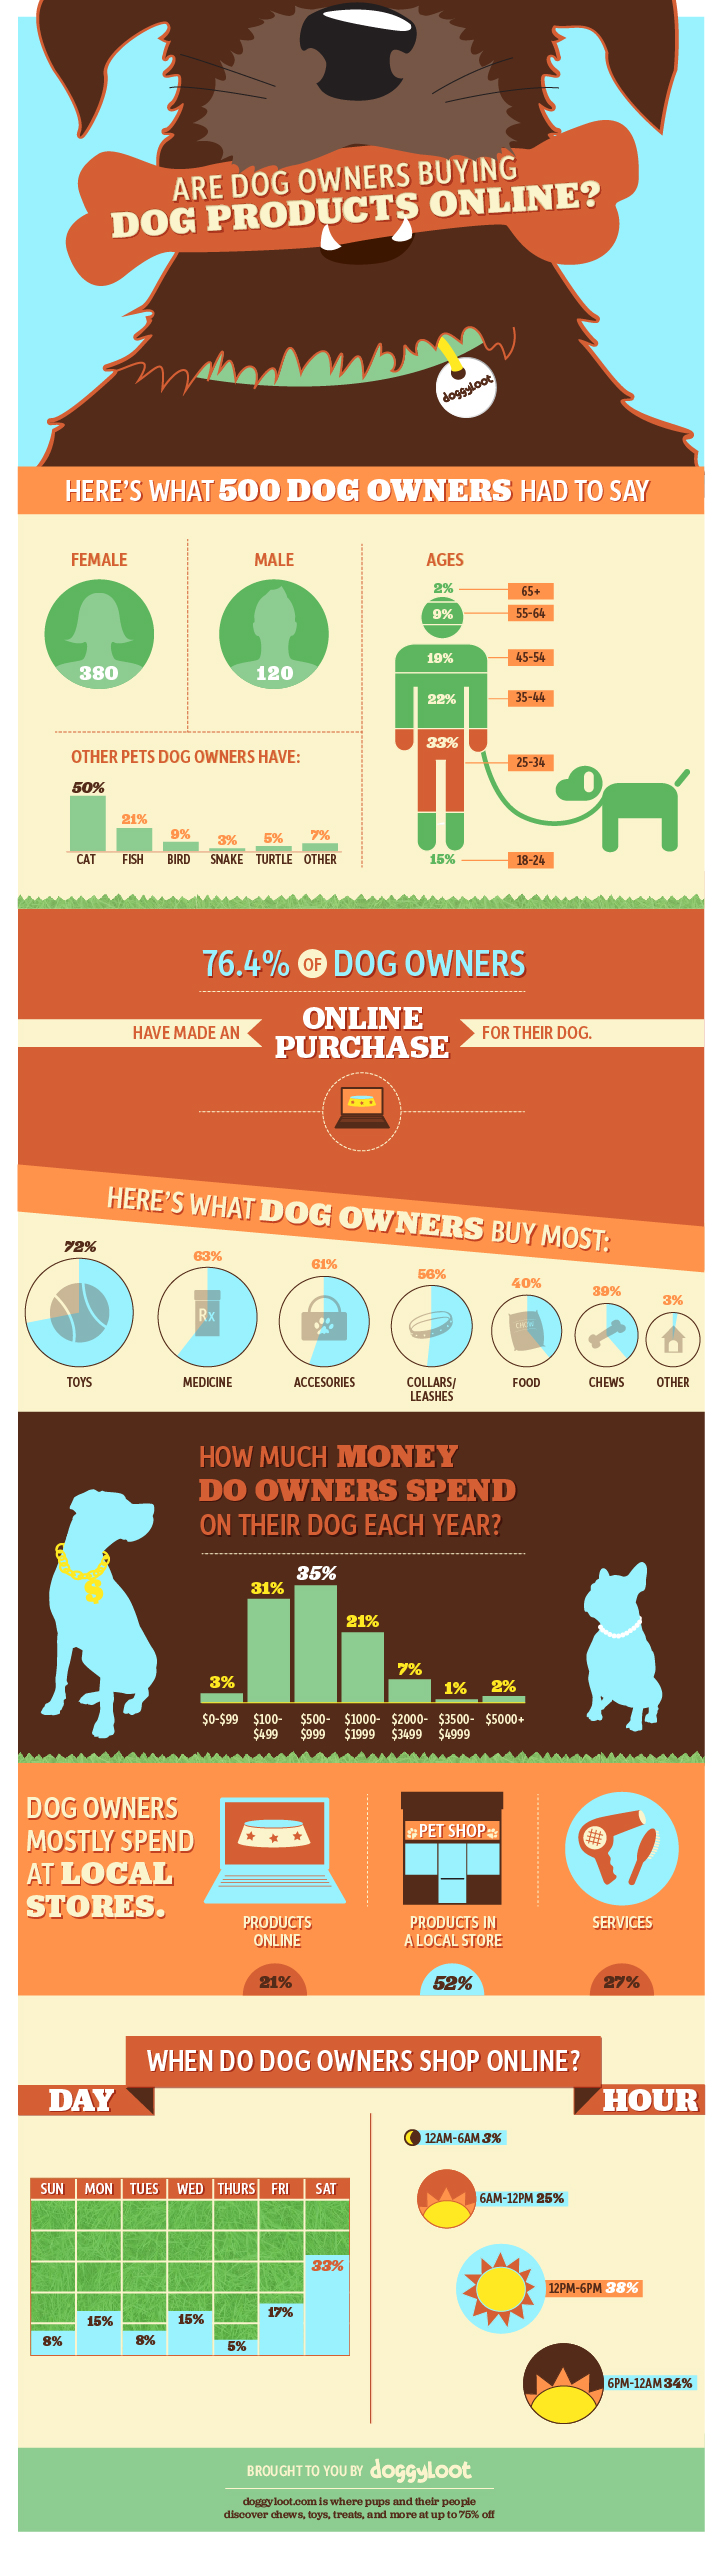 Dog Industry Consumer Online Trends